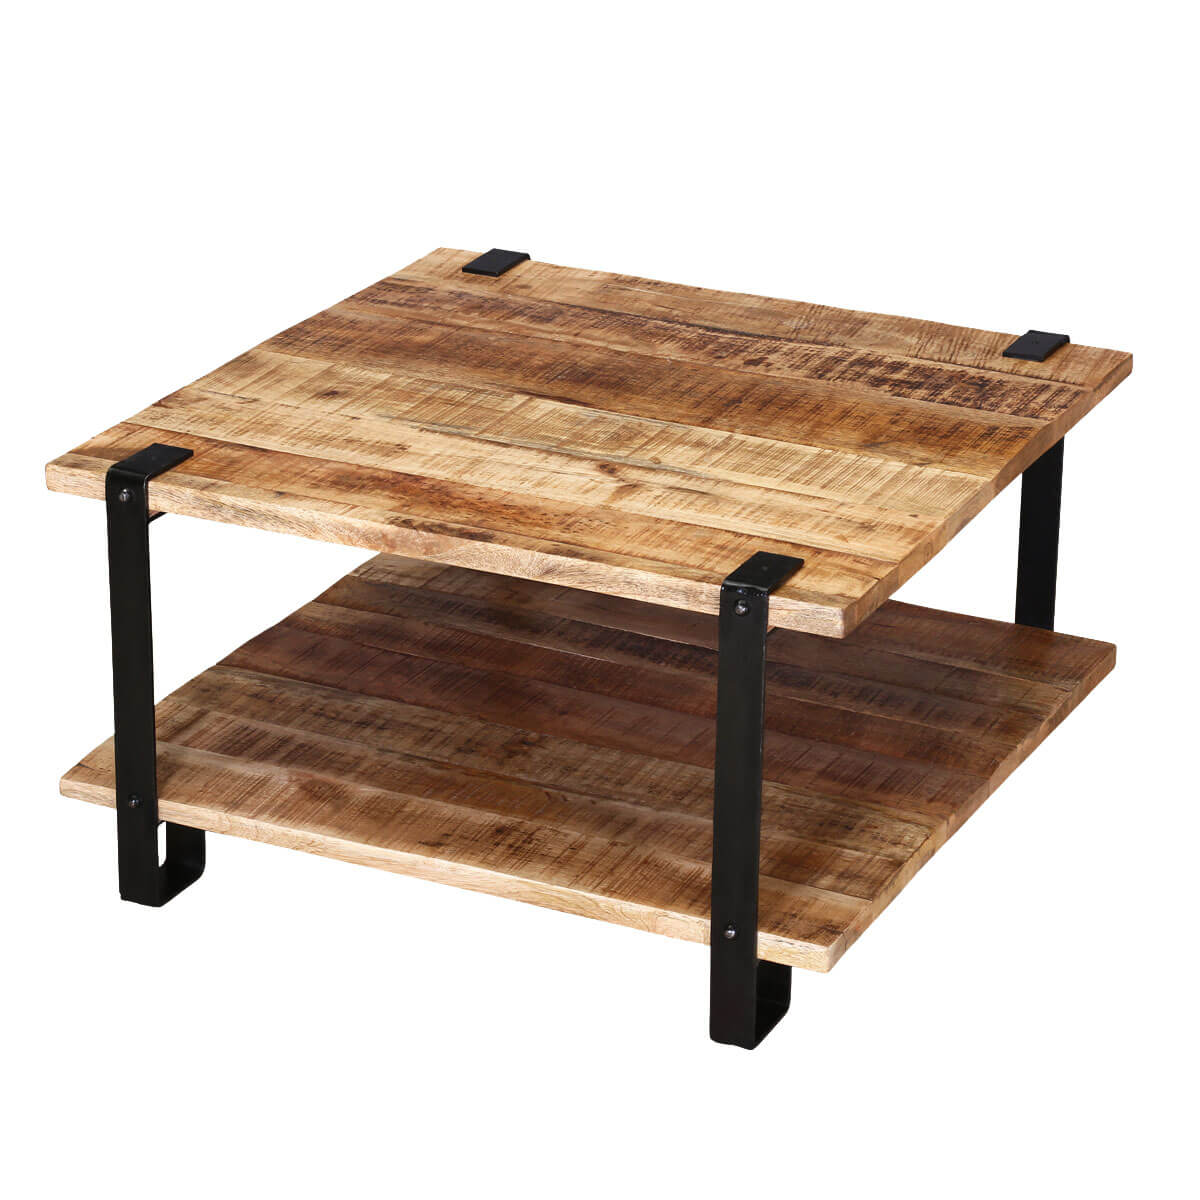 rustic square coffee table Roxborough Rustic Industrial Square Coffee Table With Saw Marks rustic square coffee table